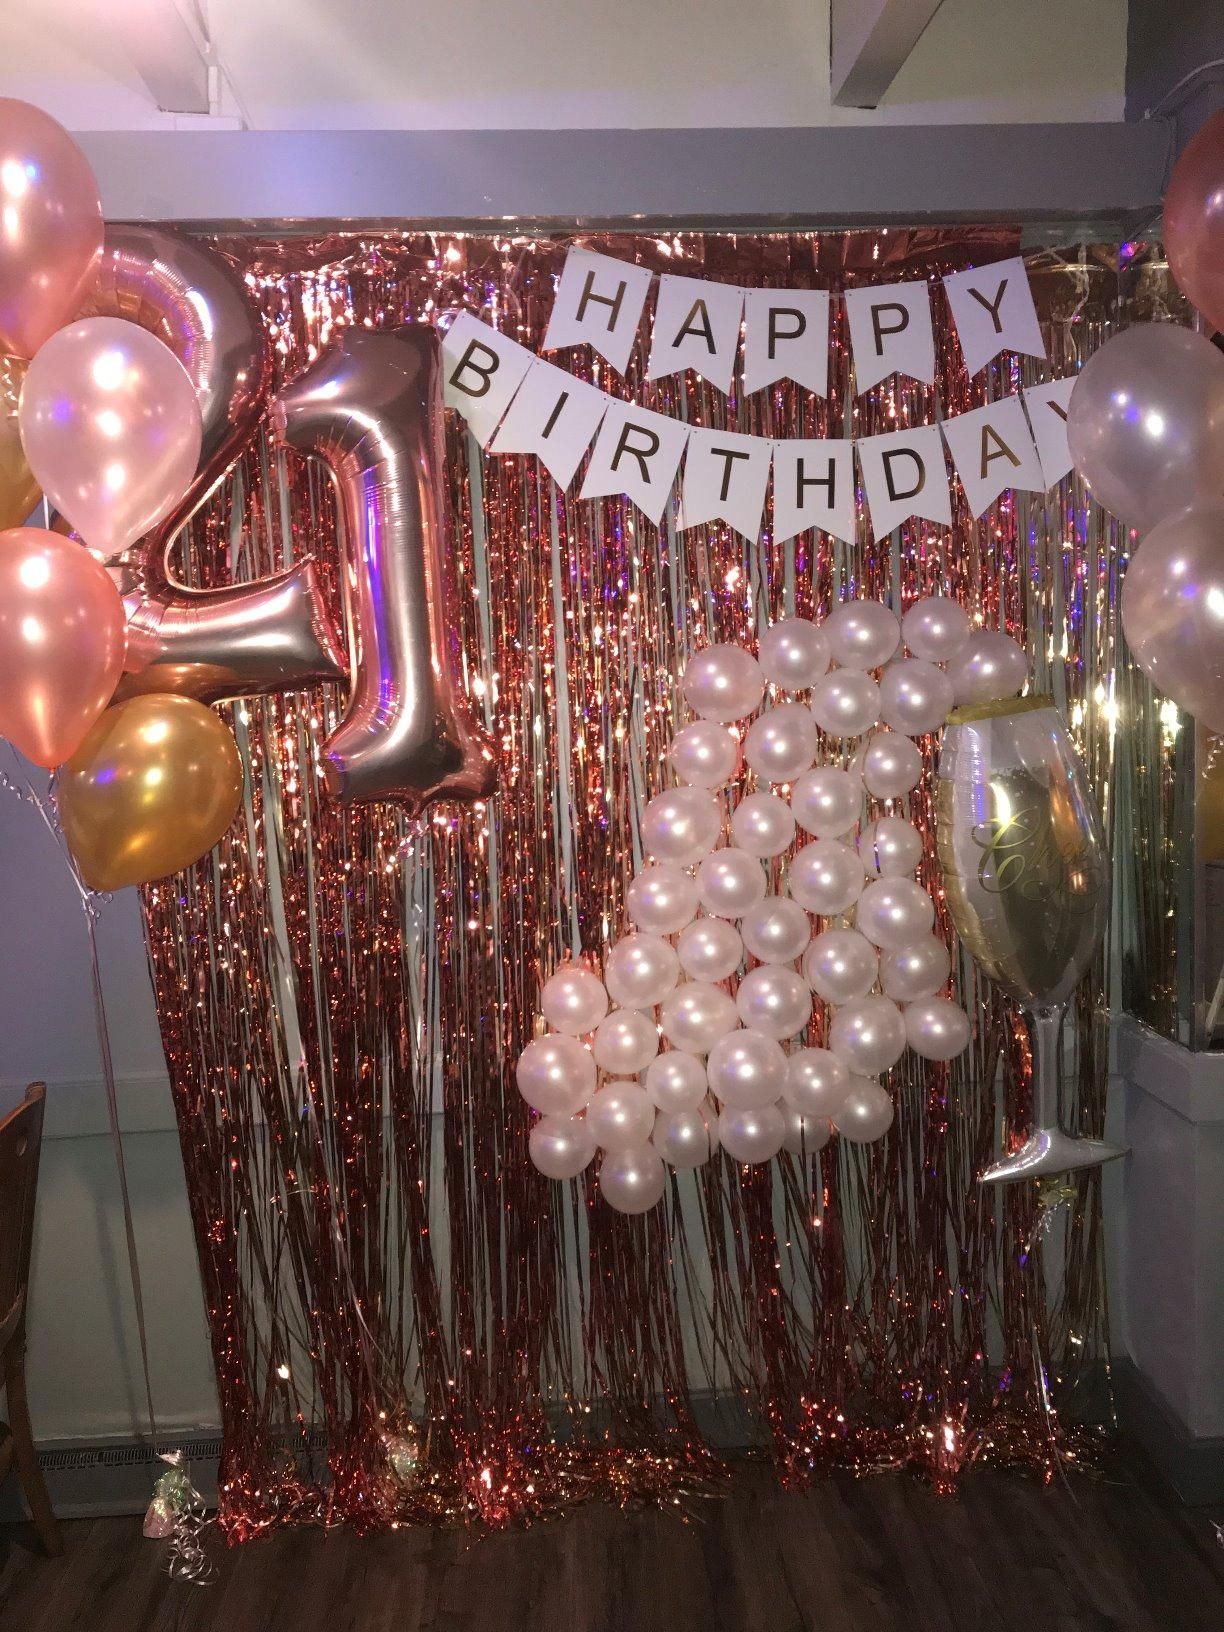 Amazon.com: Customer reviews: Keira Prince Happy Birthday Banner, Party Decorations, Versatile, Beautiful, Swallowtail Bunting Flag Garland, Chic White and Gold #21stbirthdaydecorations